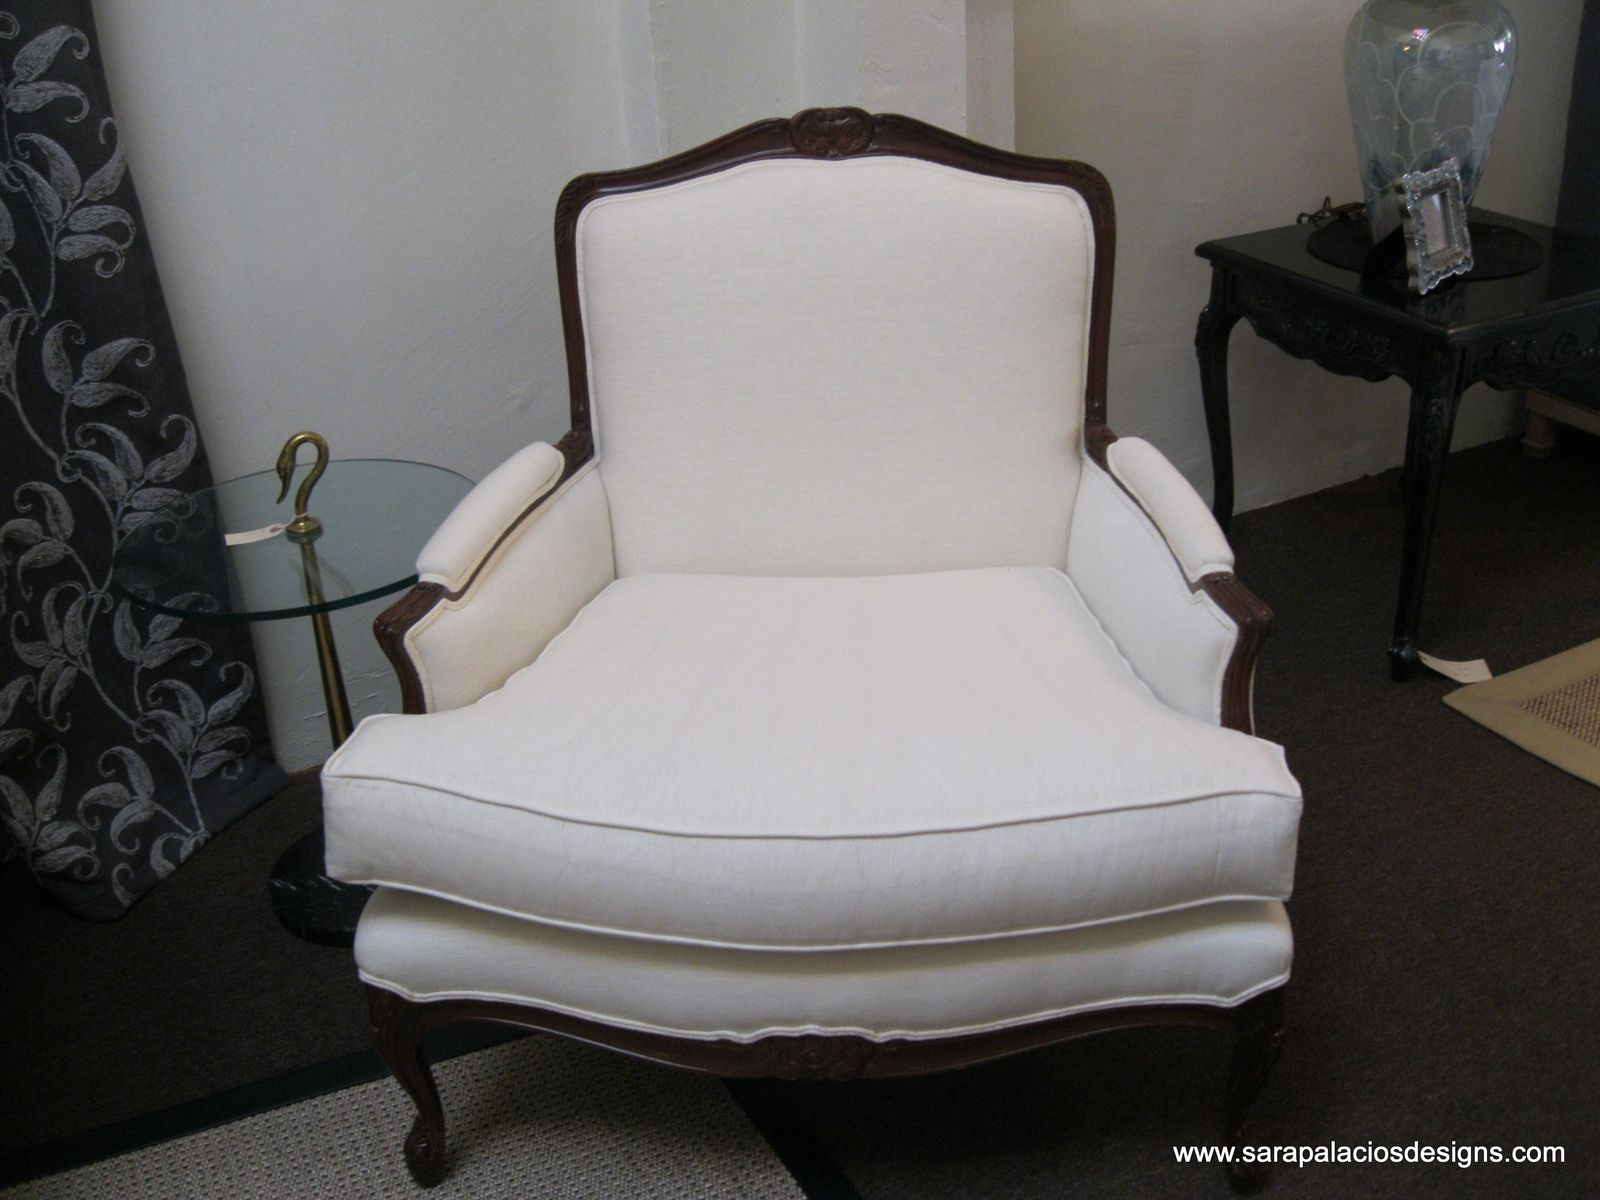 custom made throne chairs ergonomic chair miller luxe upholstered bergere by sara